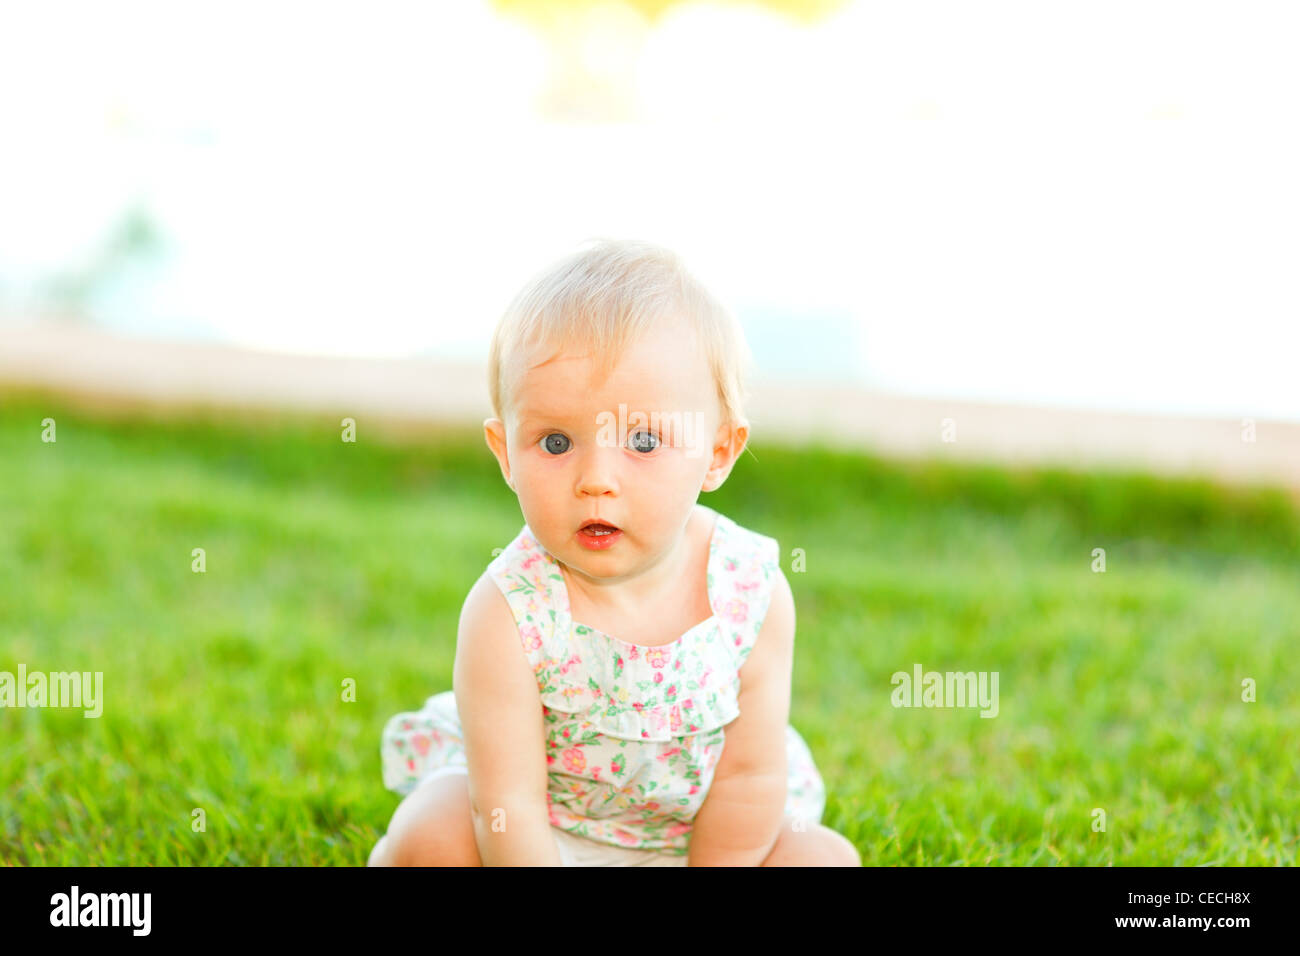 Portrait Of Interested Baby Sitting On Grass Stock Photo